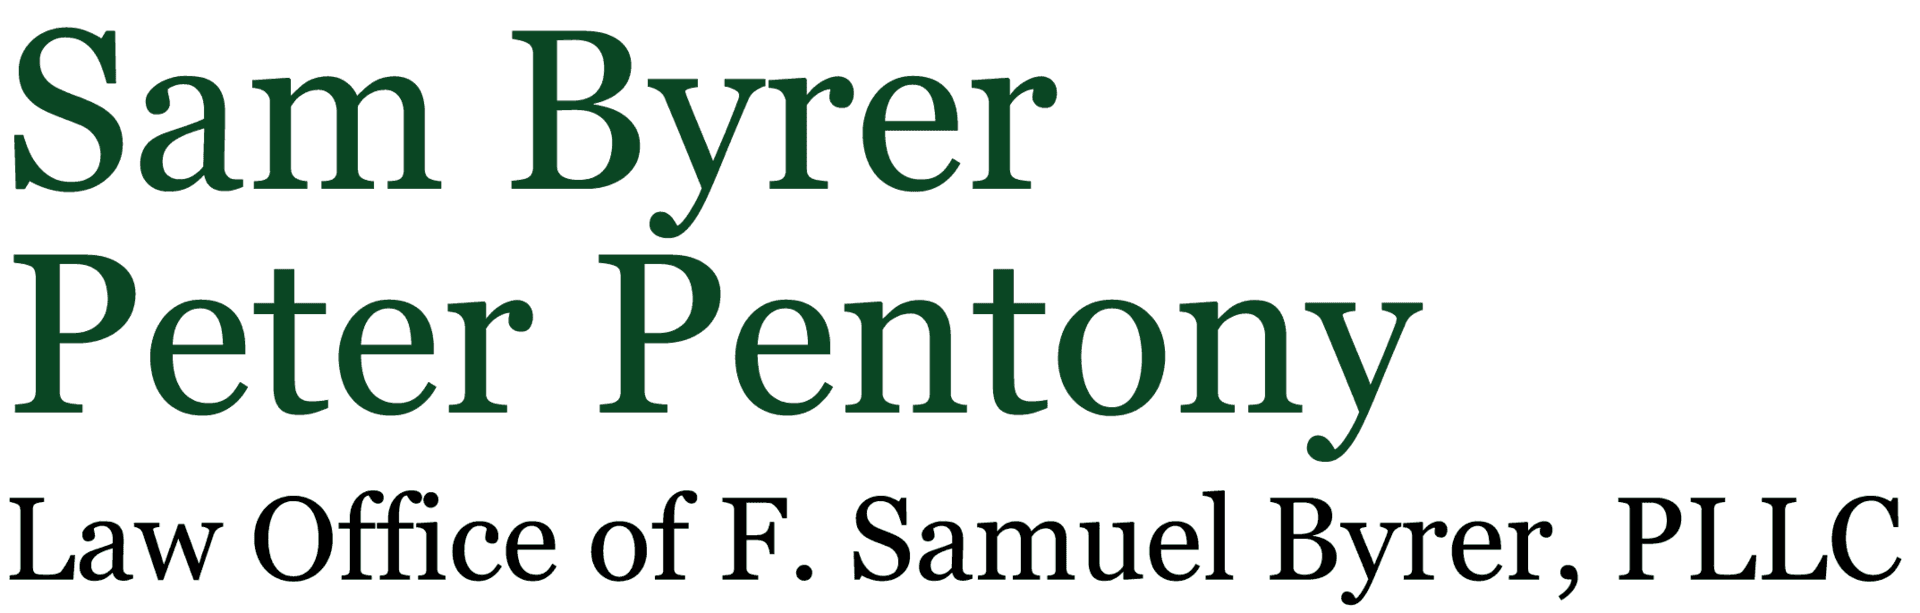 Law Offices of F. Samuel Byrer PLLC - Logo